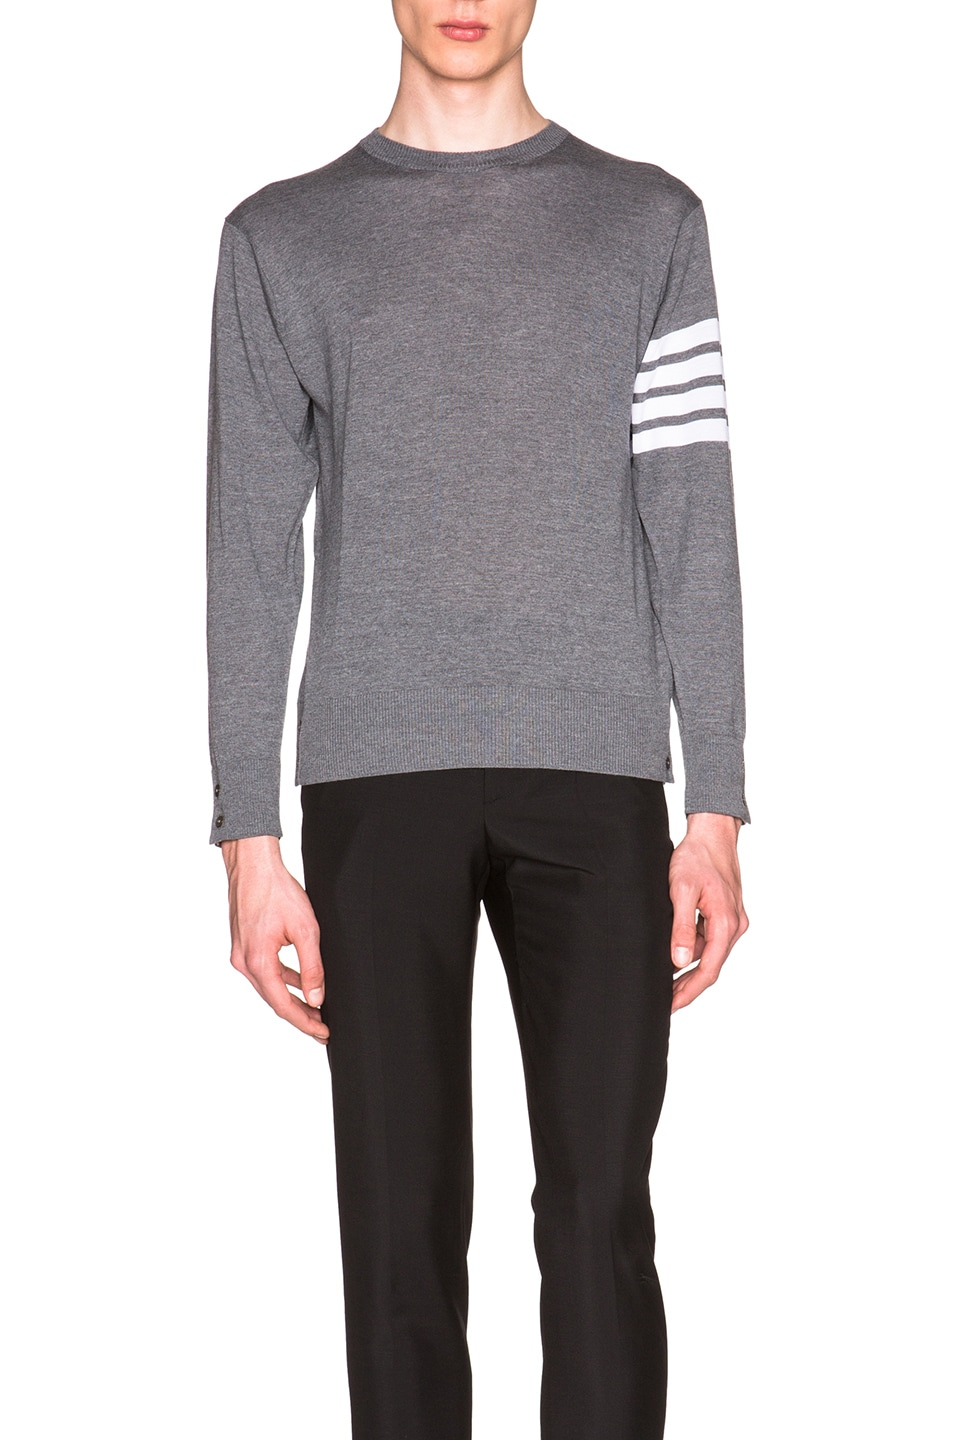 THOM BROWNE Merino Wool Crewneck Sweater, Light Gray